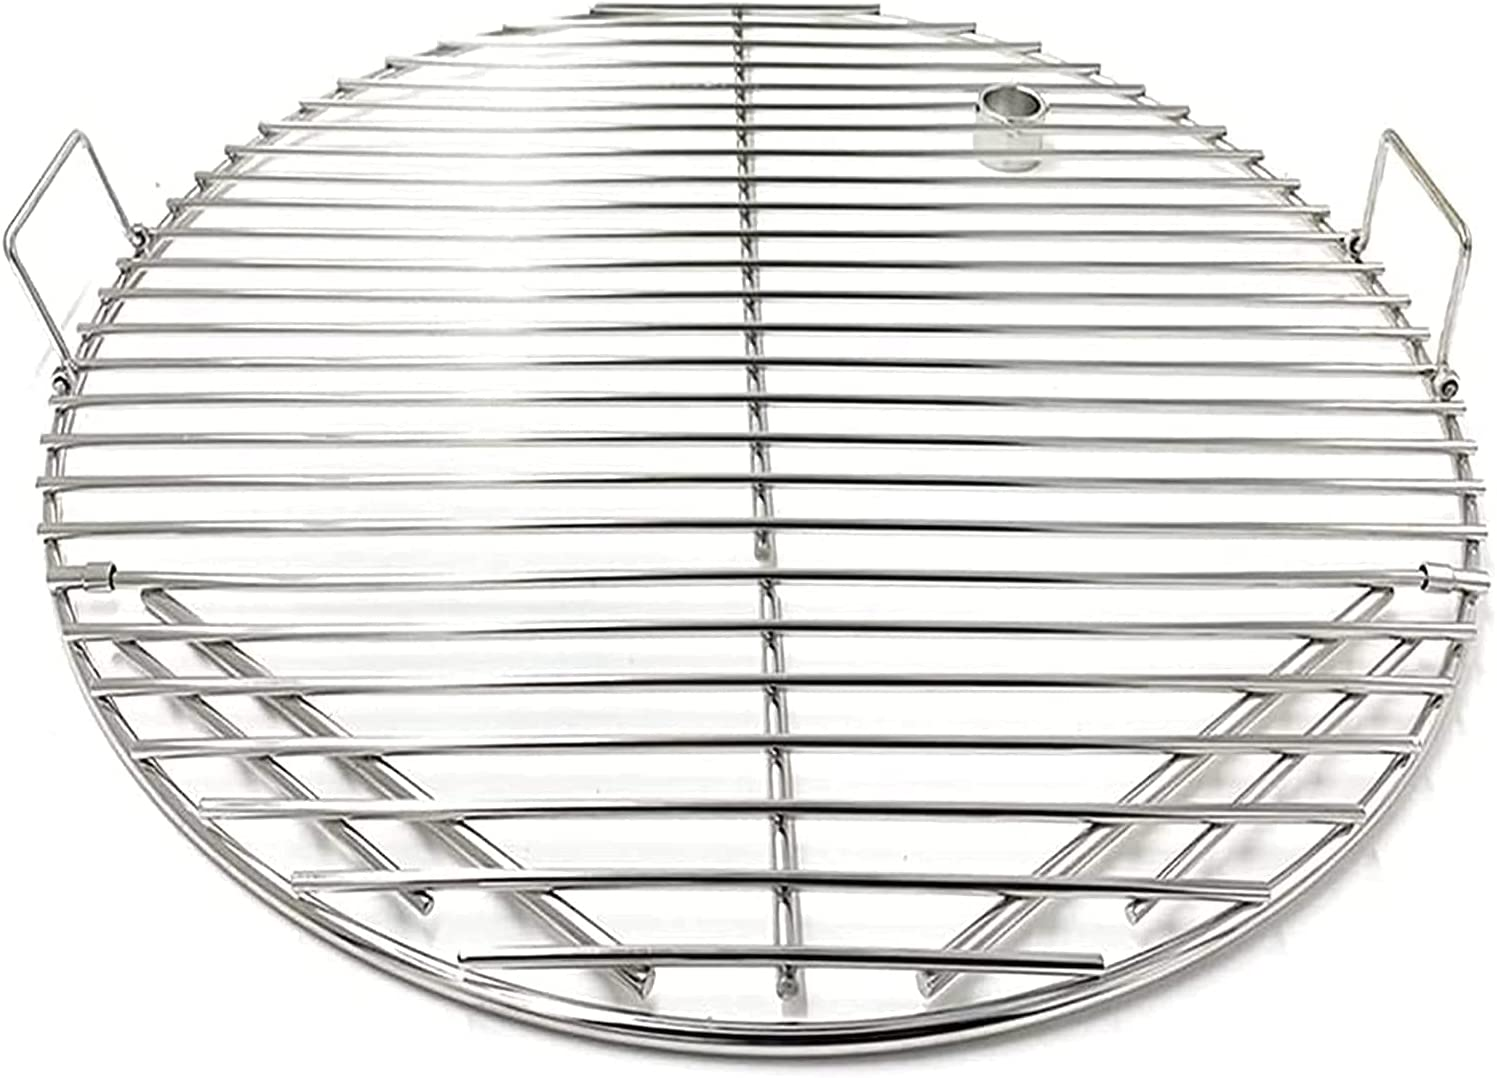 RLOZUI 19.5 Inches Barbecue Stainless Grate Inexpensive Steel Round Cooking Manufacturer direct delivery